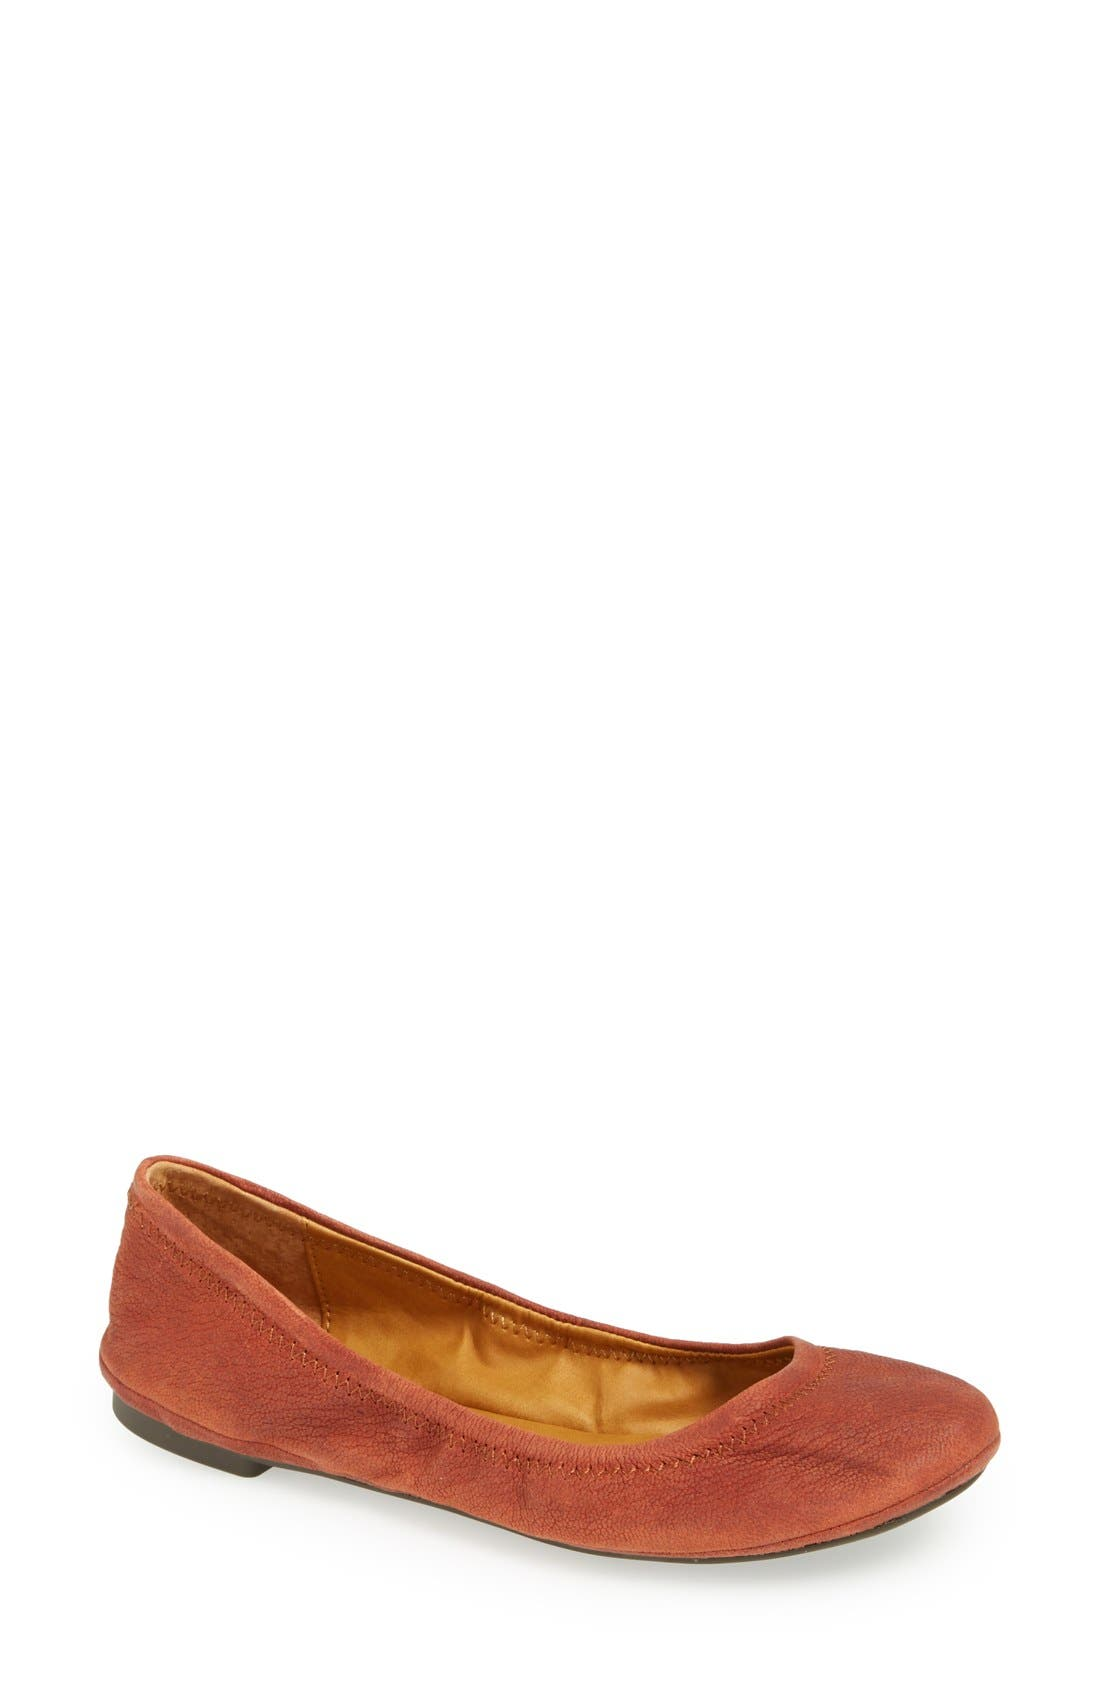 Alternate Image 1 Selected - Lucky Brand 'Emmie' Flat